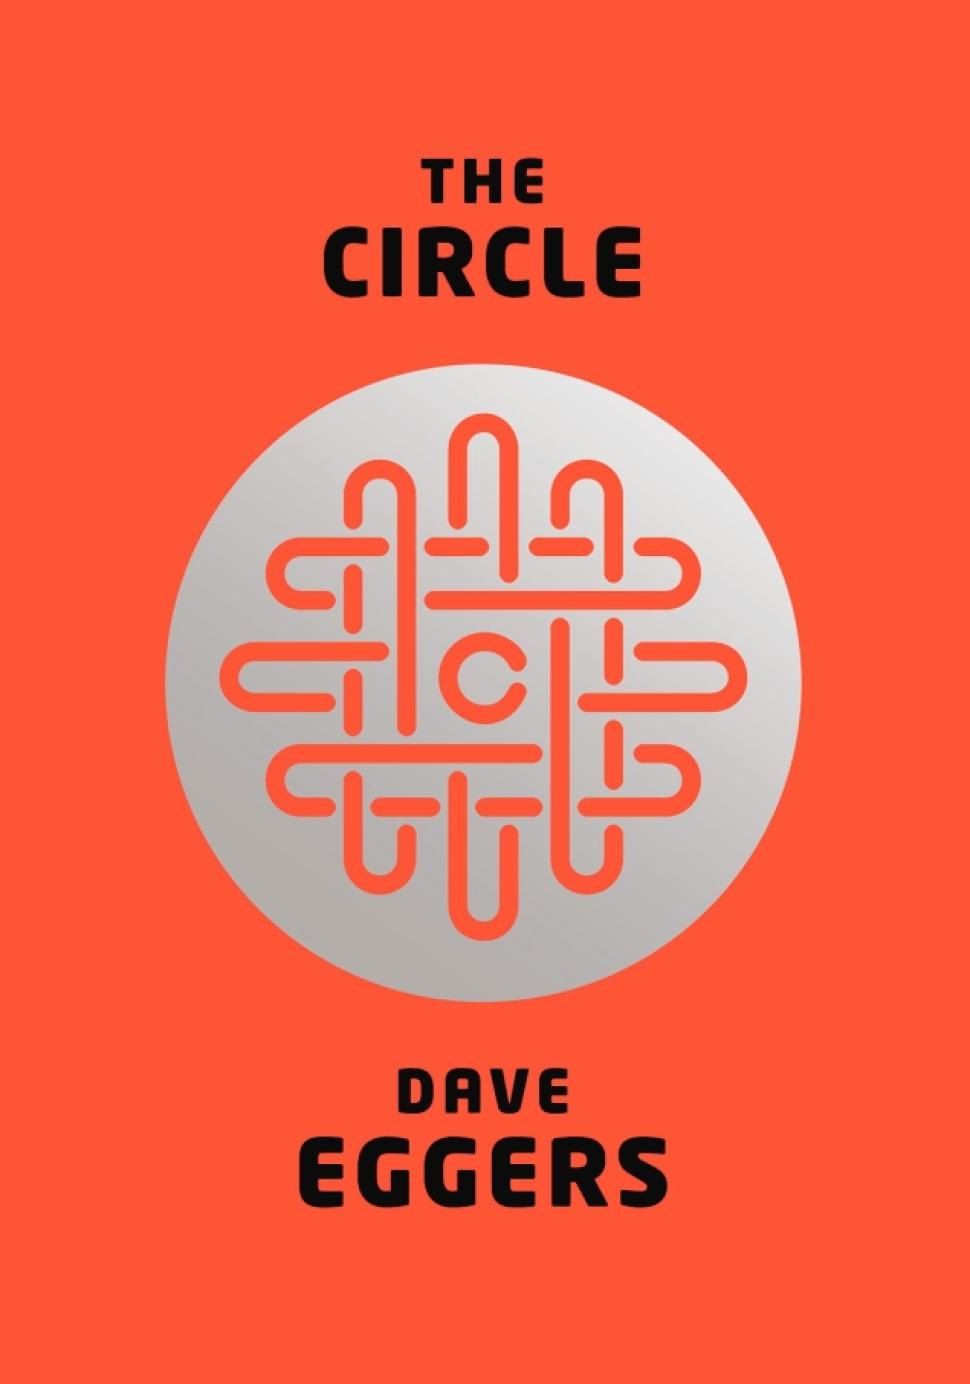 Books Dystopian The Circle.jpg